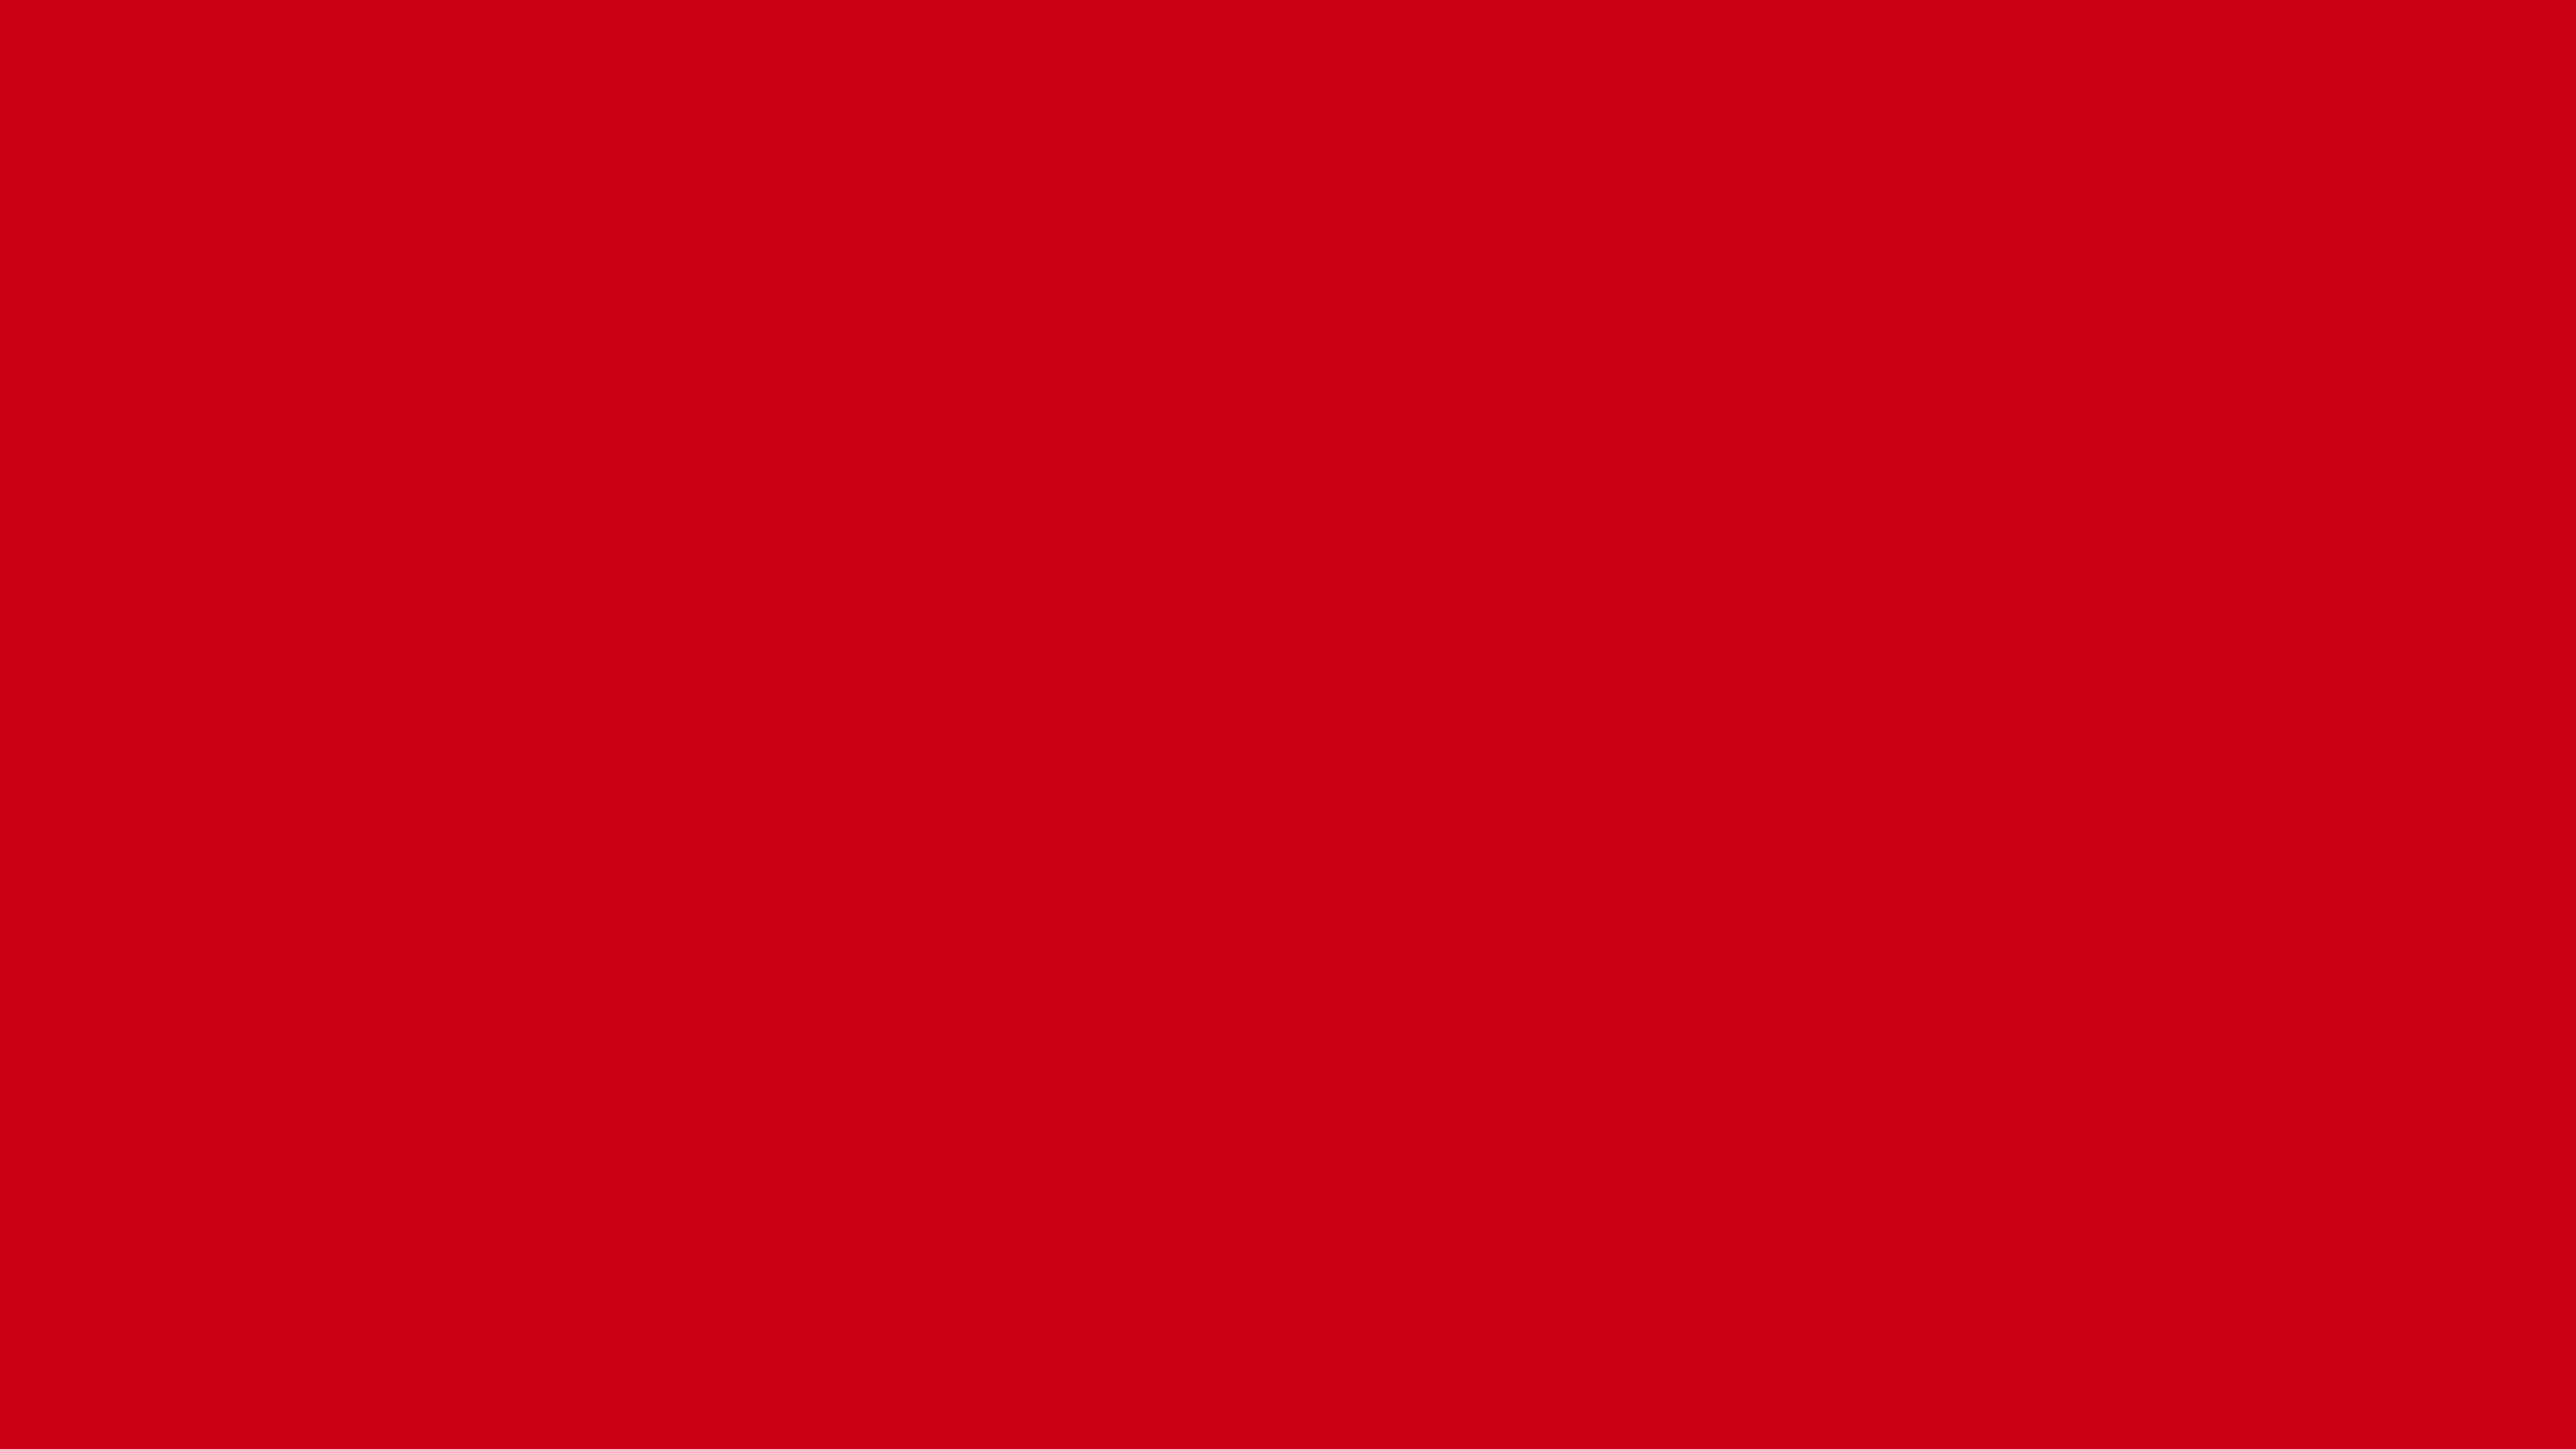 3840x2160 Harvard Crimson Solid Color Background